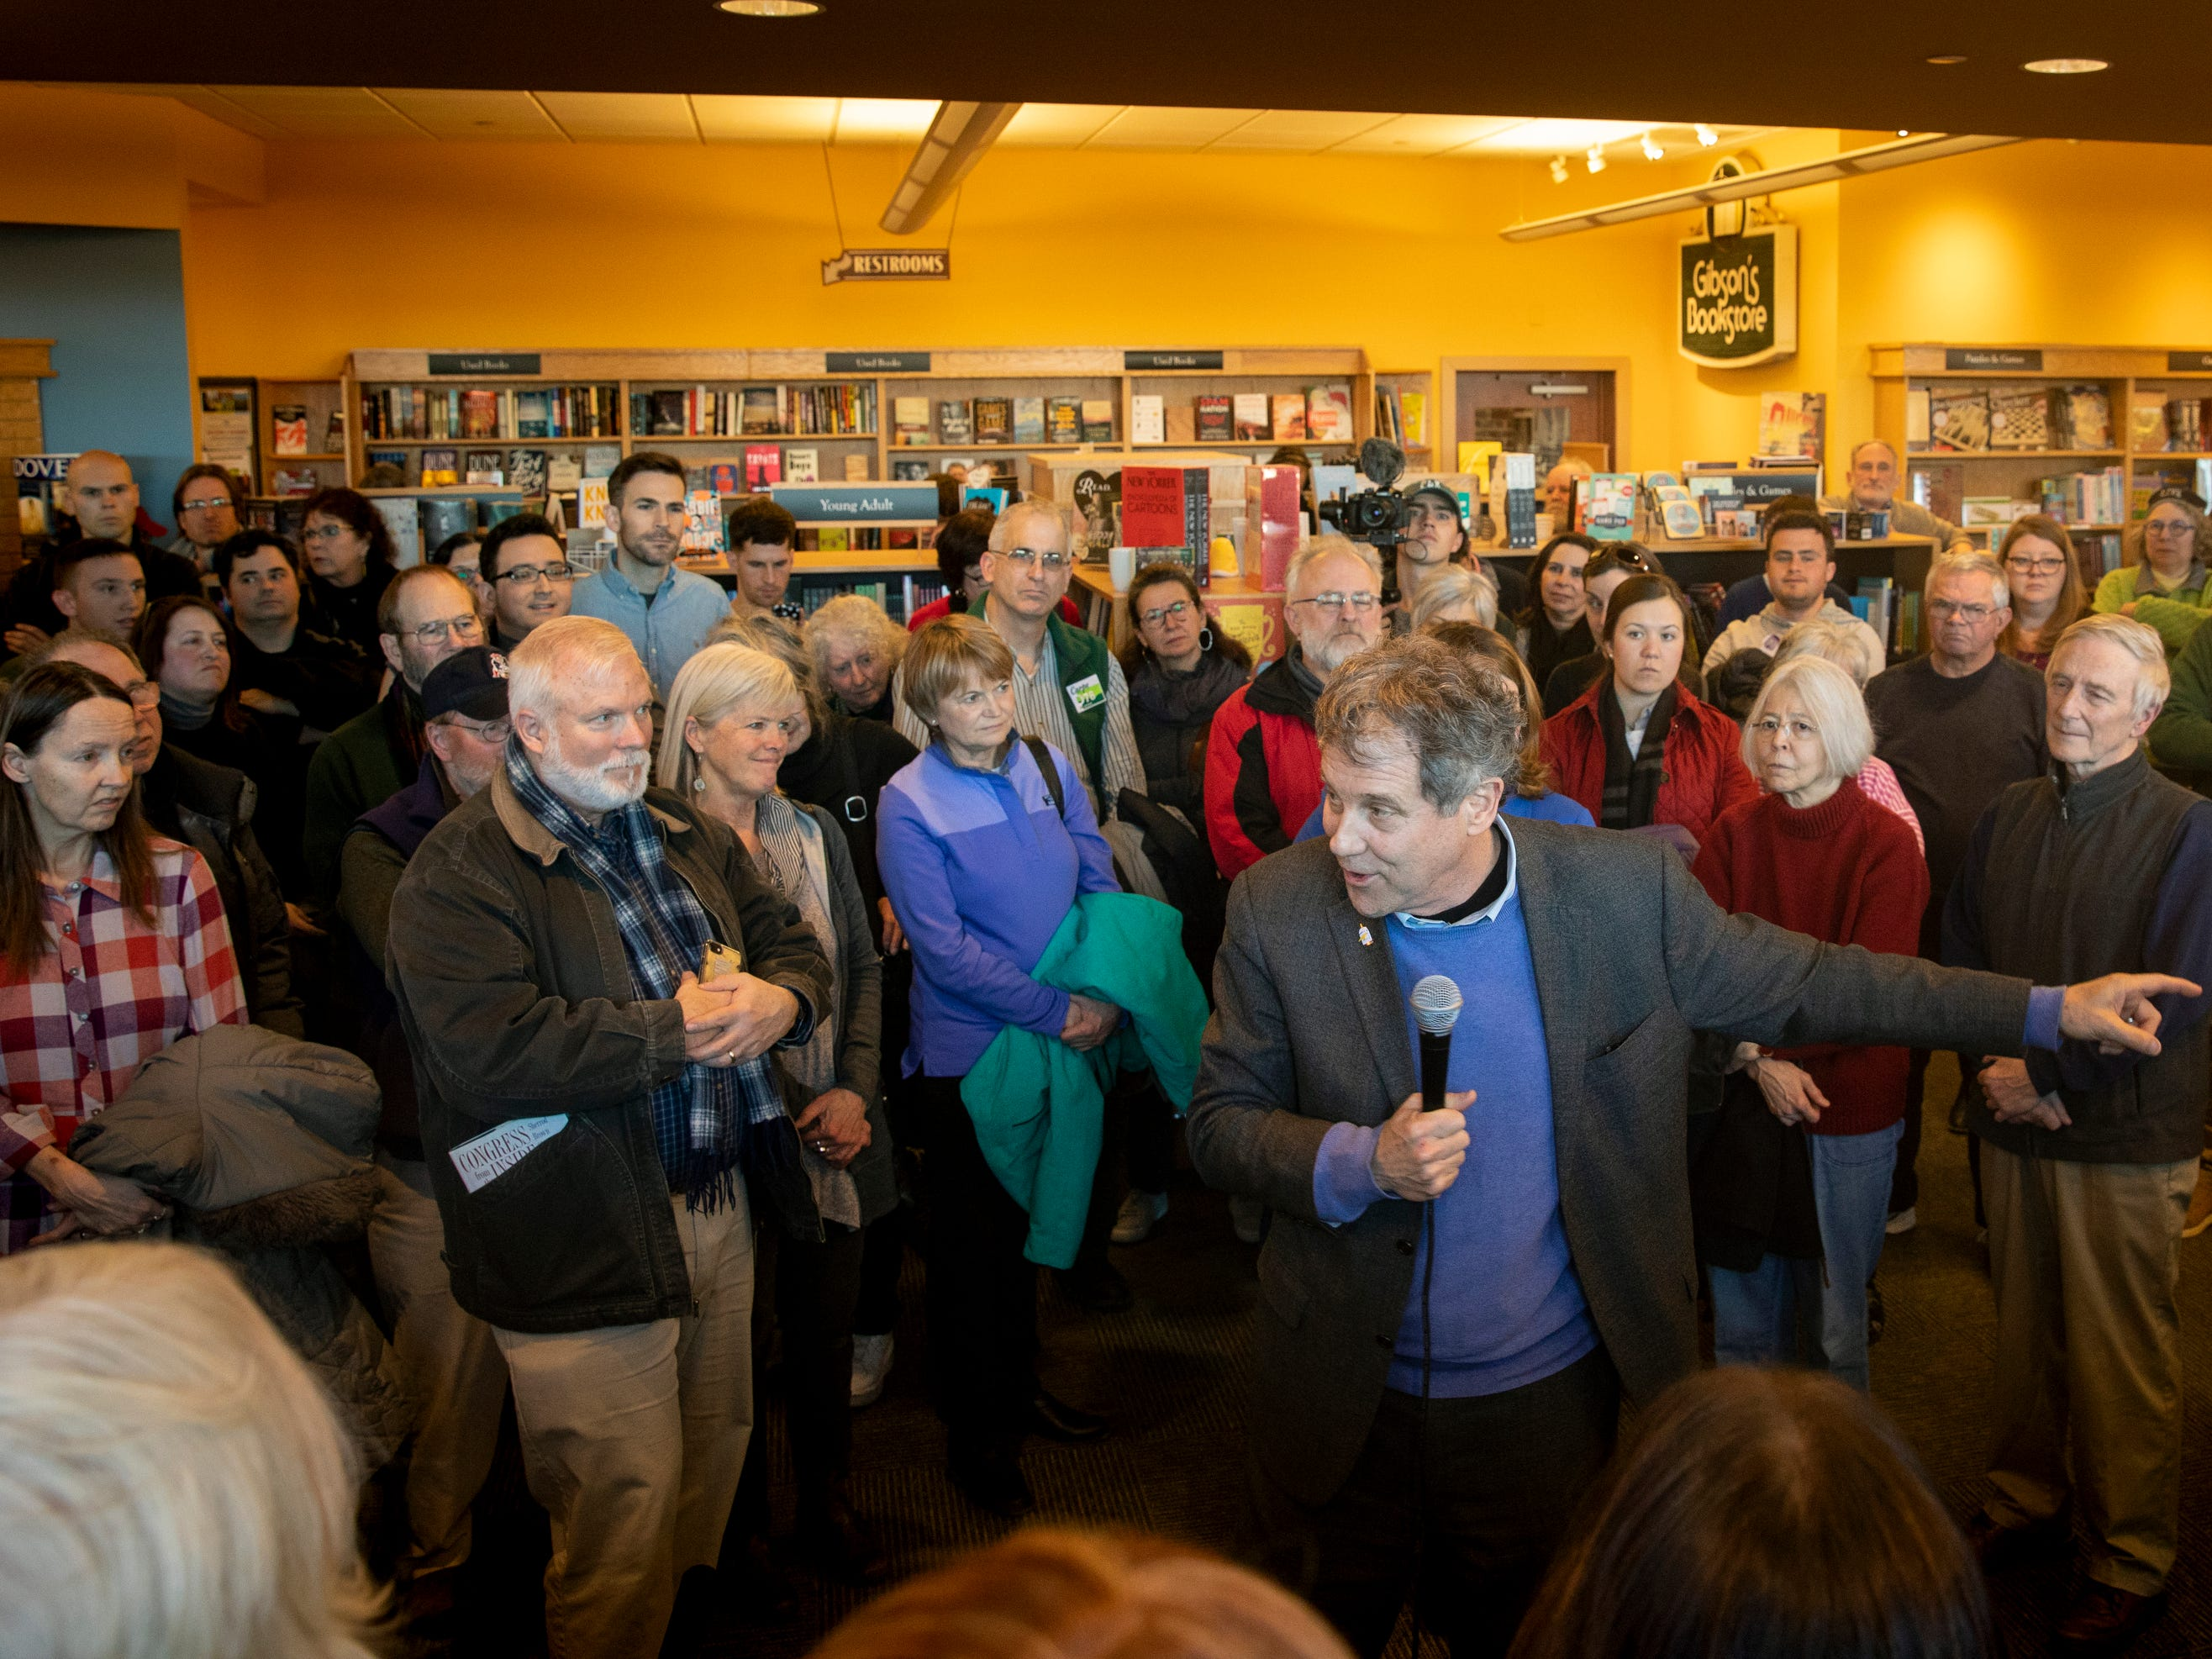 Senator Sherrod Brown speaks to a large crowd at Gibson's Bookstore in Concord, N.H. Saturday, February 9, 2019. Michael Herrmann, the owner of Gibson's Bookstore, said it was the largest crowd the store has seen since Christmas Eve.